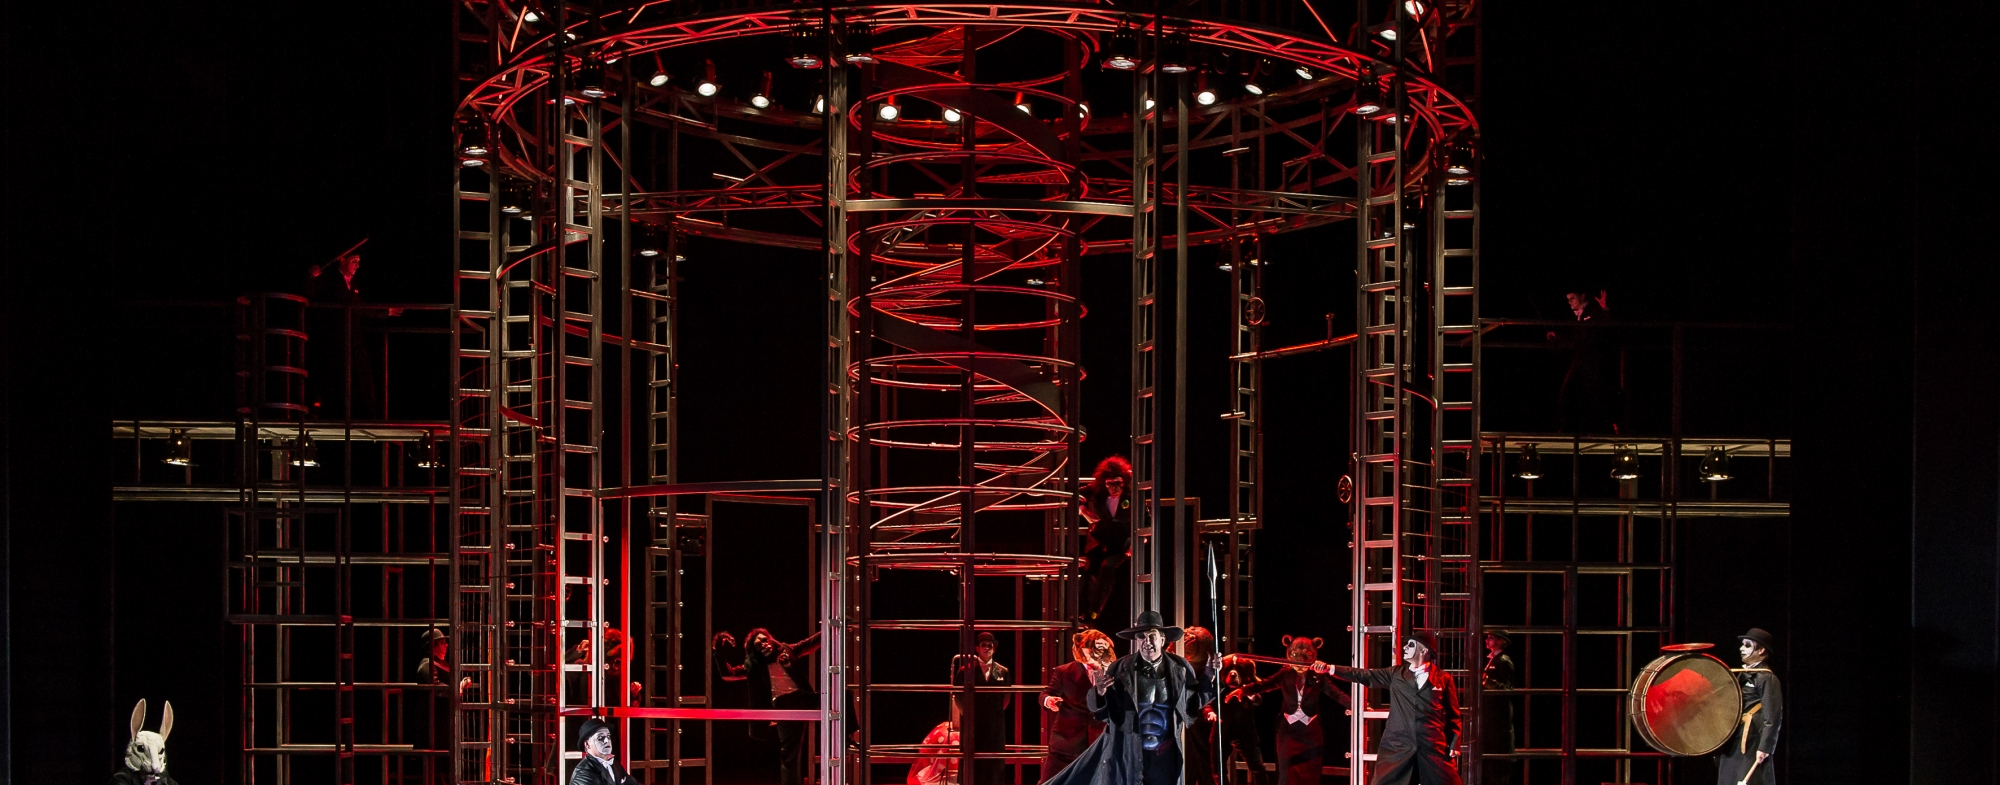 Animals and humans are in an elaborate metal prison cage. The stage is is dimly lit, with red lighting.